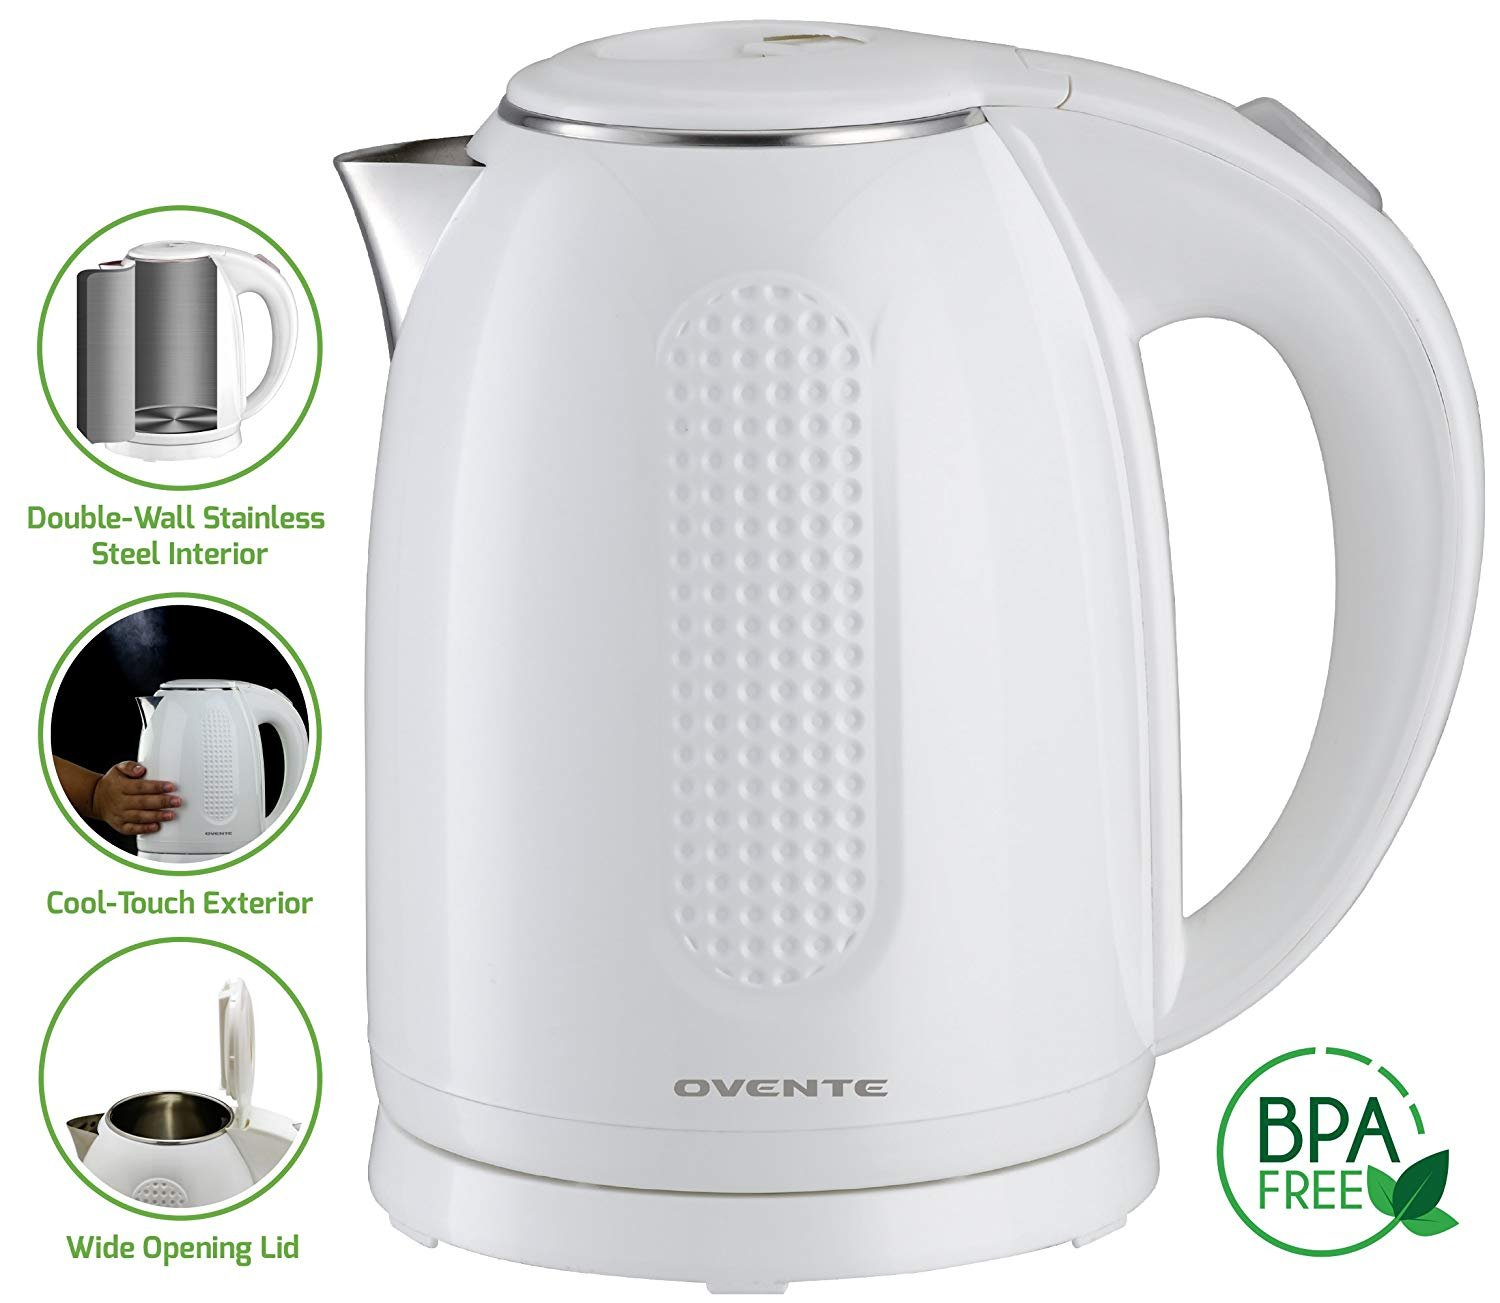 Ovente 1.7L Electric Kettle, Double Wall 304 Stainless Steel Water Boiler, Auto Shut-Off and Boil-Dry Protection, Stay-Cool Exterior, BPA-Free, Cordless, White (KD64W)